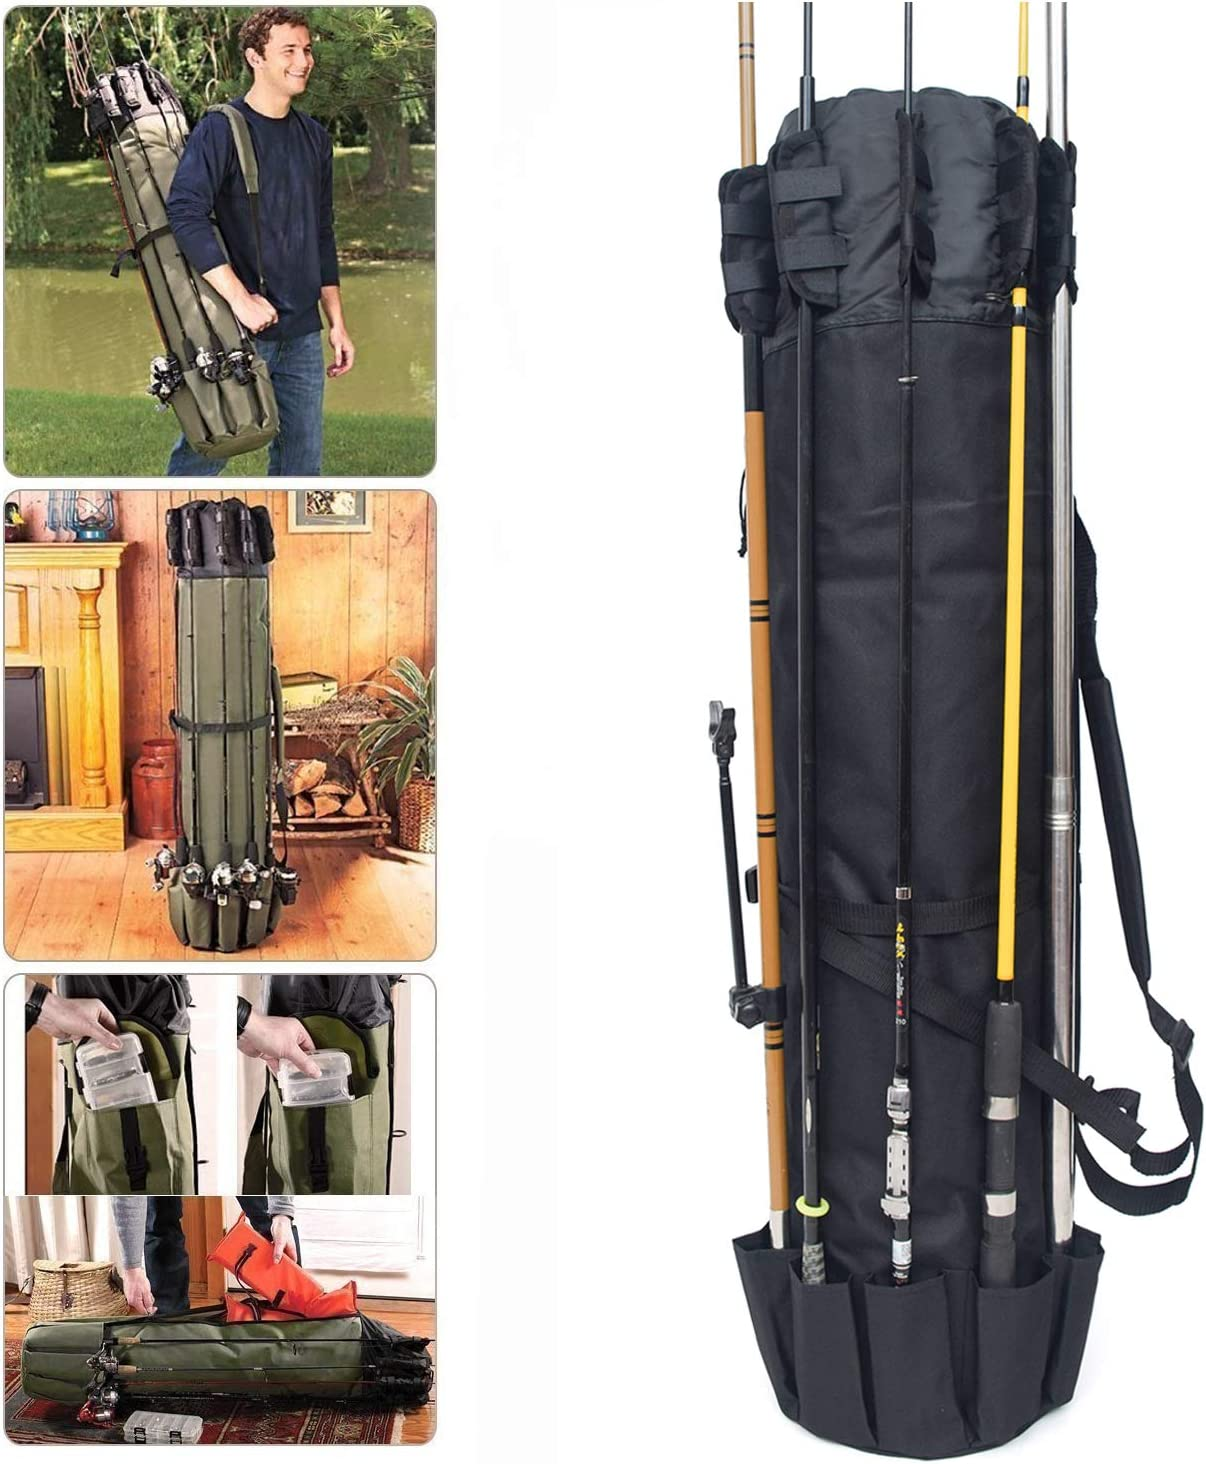 KJLM Fishing Tackle Bag Fishing Rod Bag Holdall Bag Travel Reel Carry Case Pole Tools Storage Bags Thickening Canvas 48.4inch